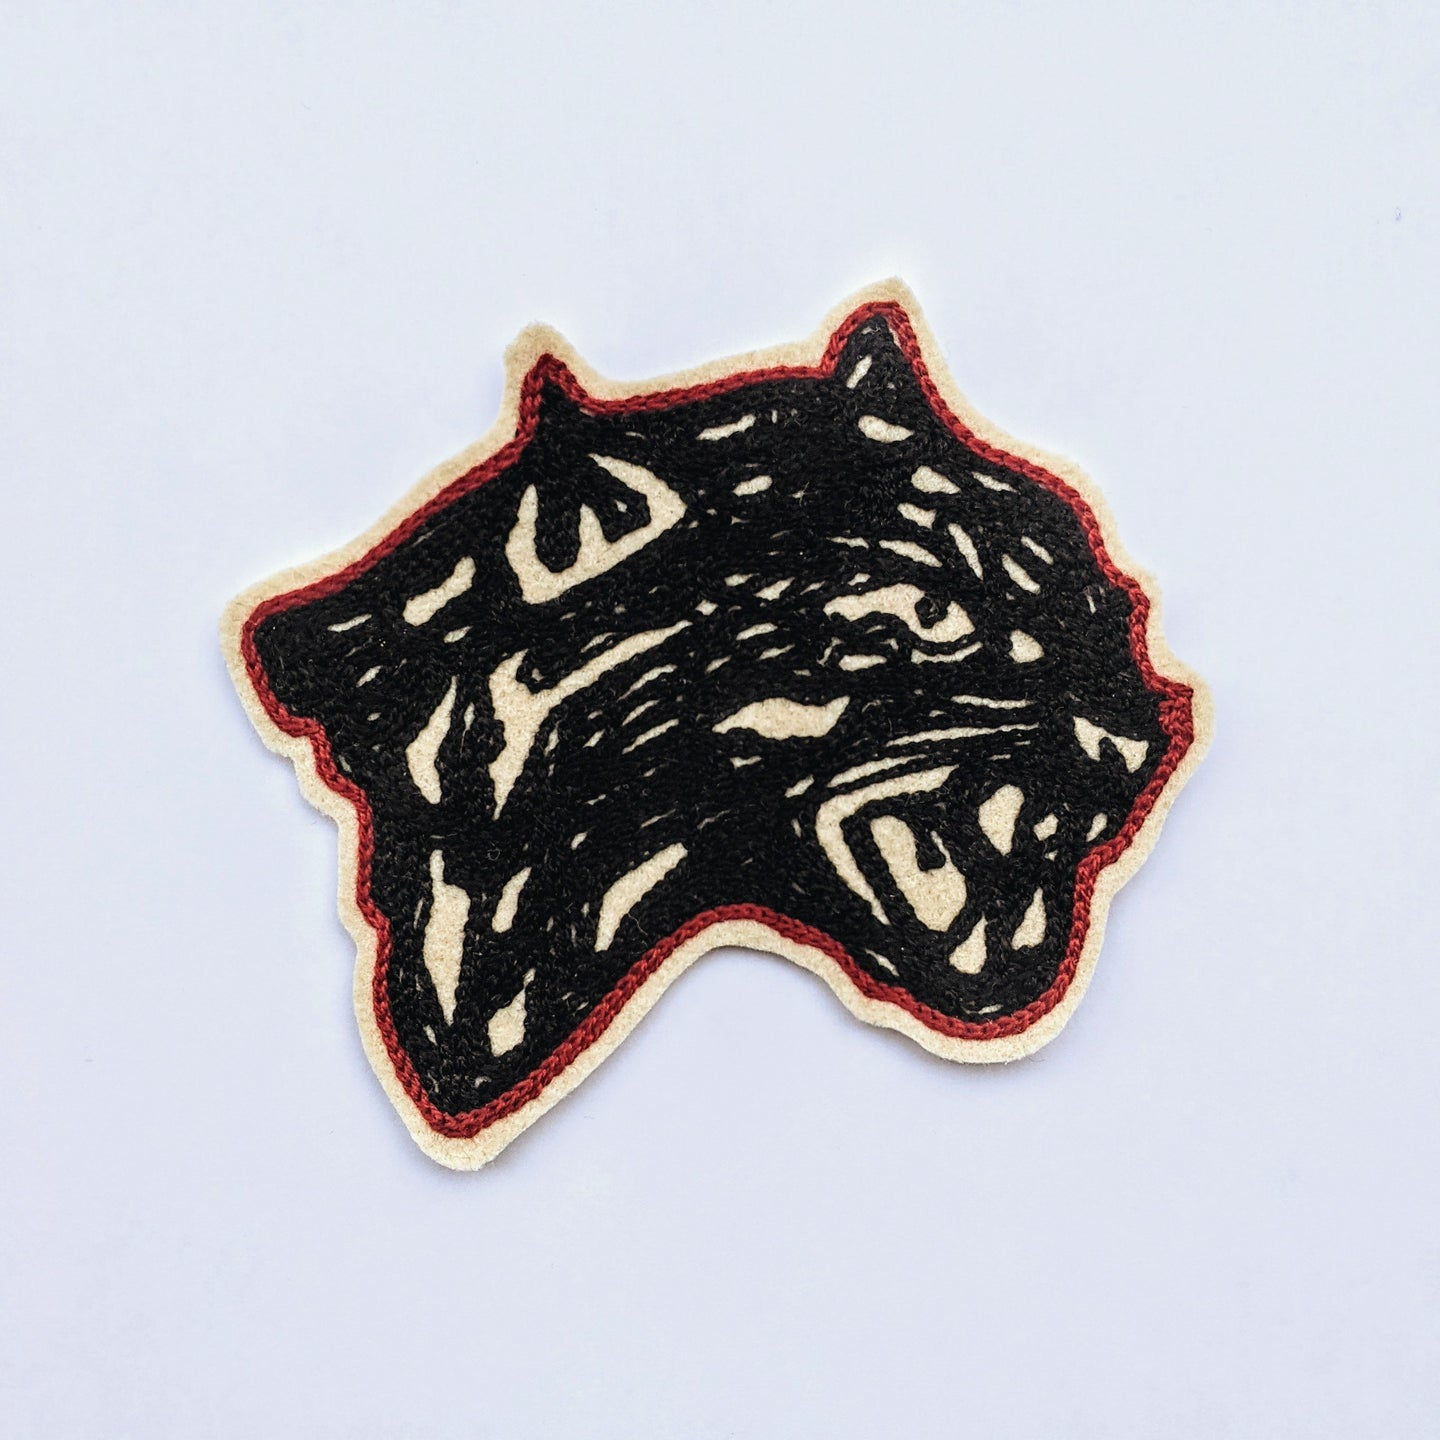 Chain Stitch Letterman Patch - Panther